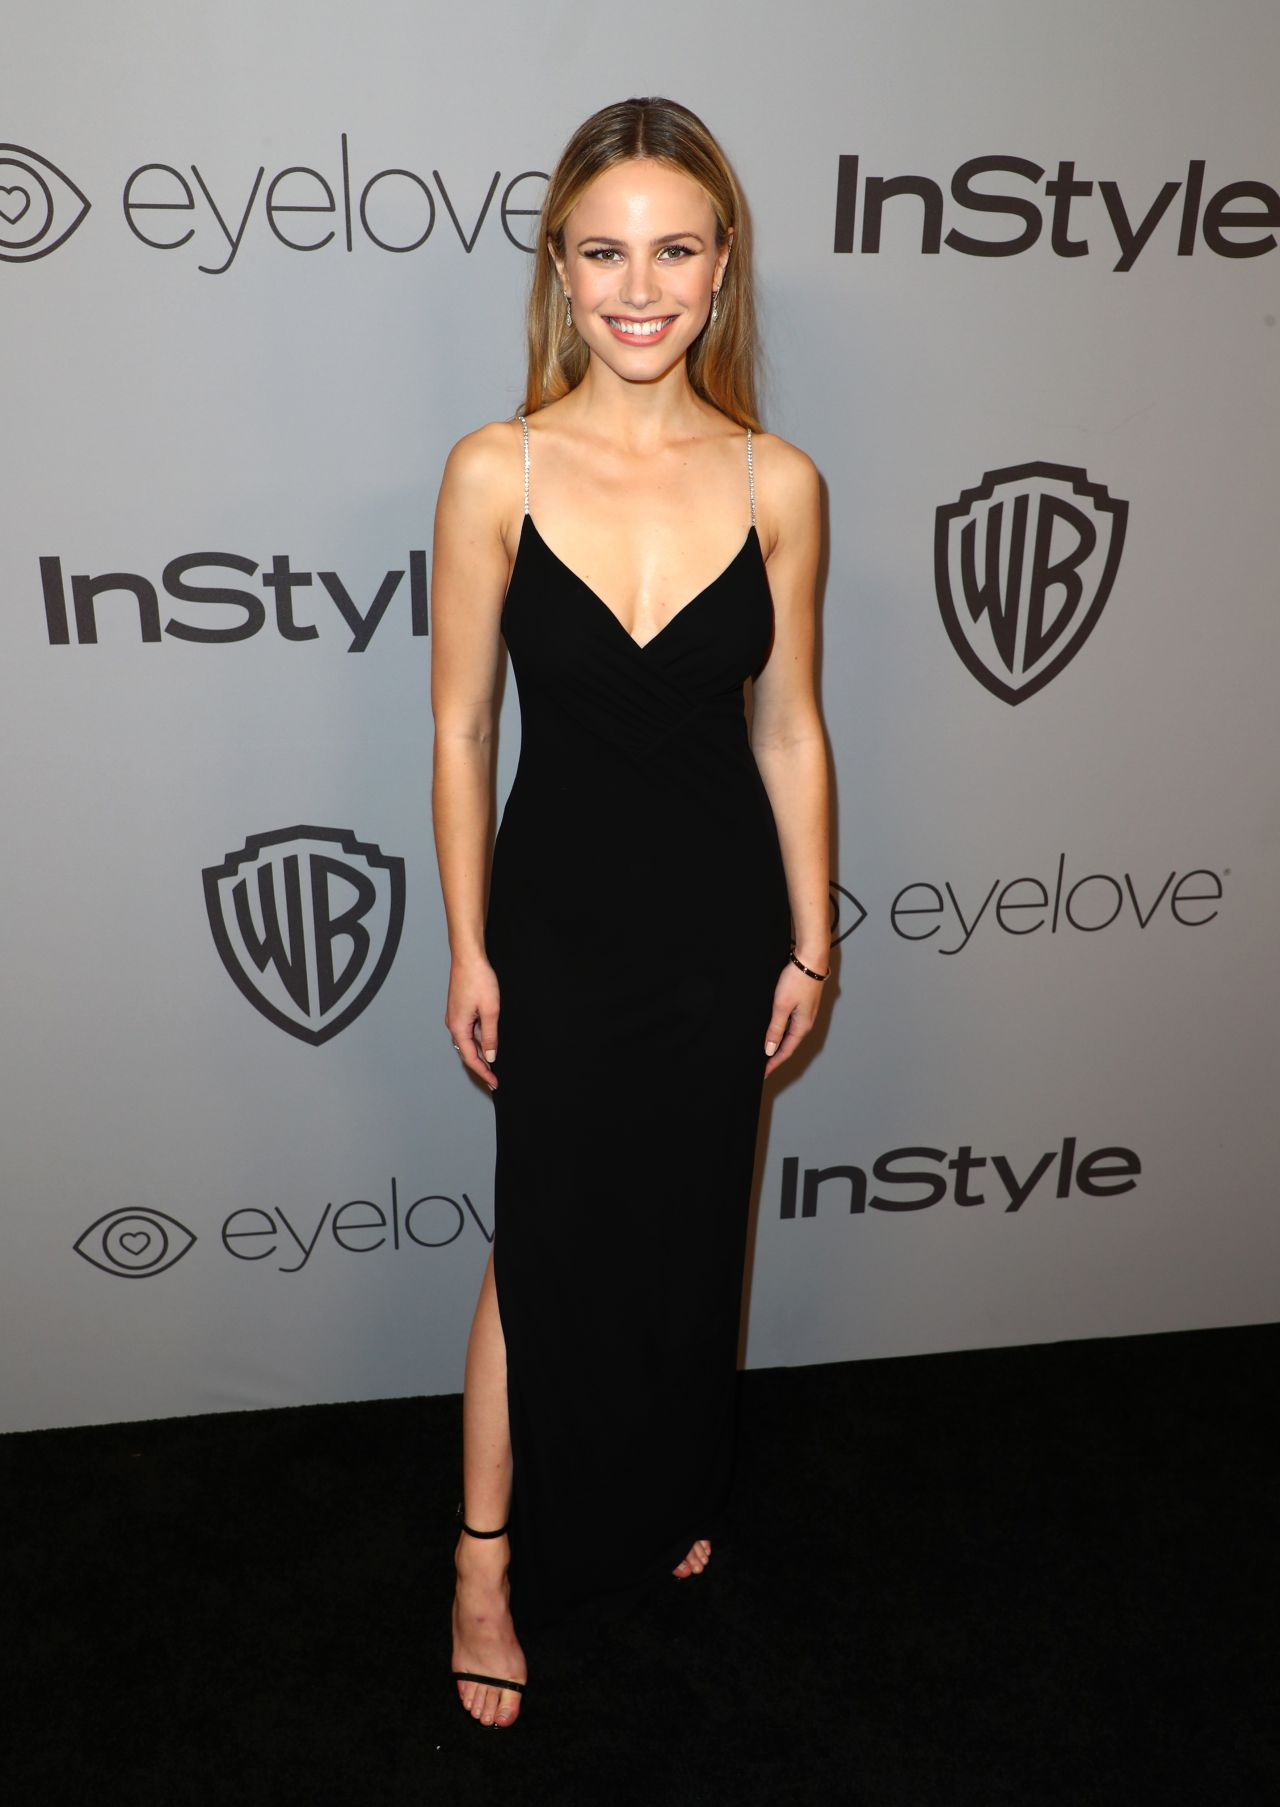 Halston Sage Nude Photos 53